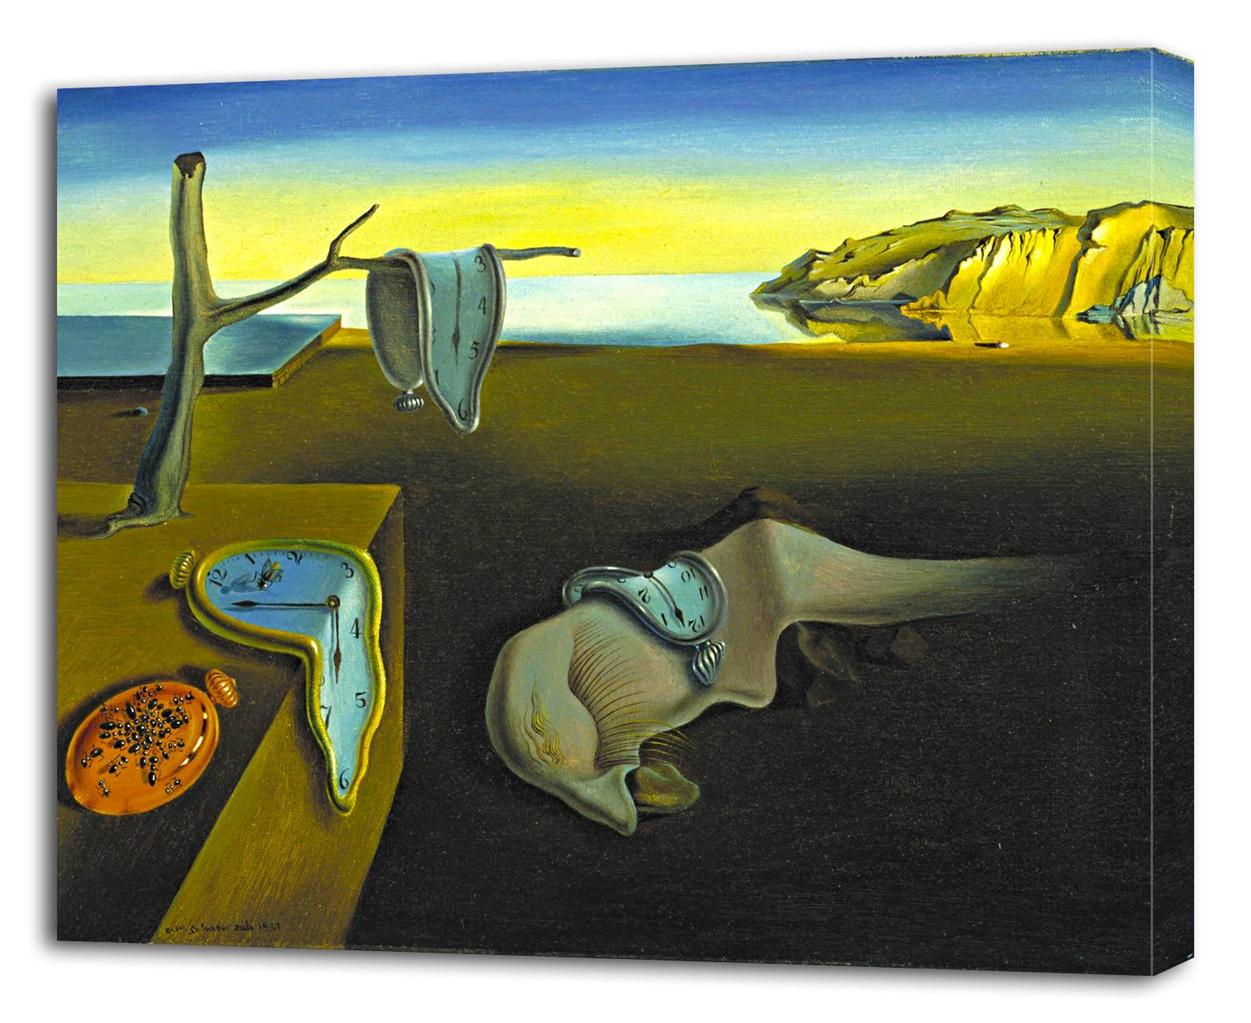 salvador dali the persistence of memory canvas print wall decor  salvador dali the persistence of memory canvas print